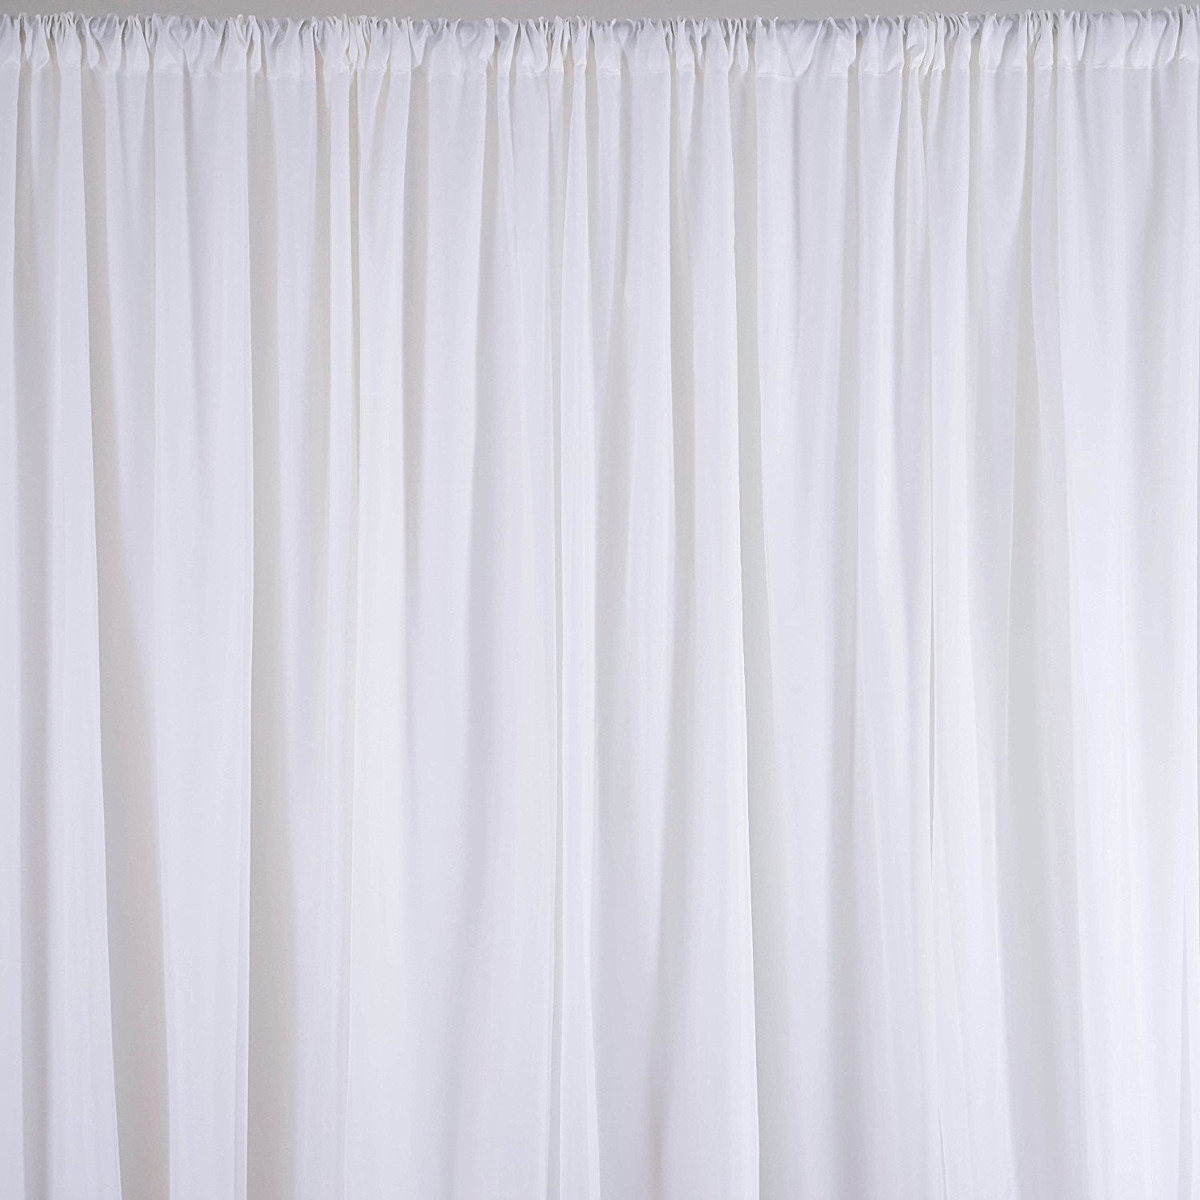 Hot 7 9ftx4 9ft White Wedding Party Backdrop Curtain D Background Decor Studio